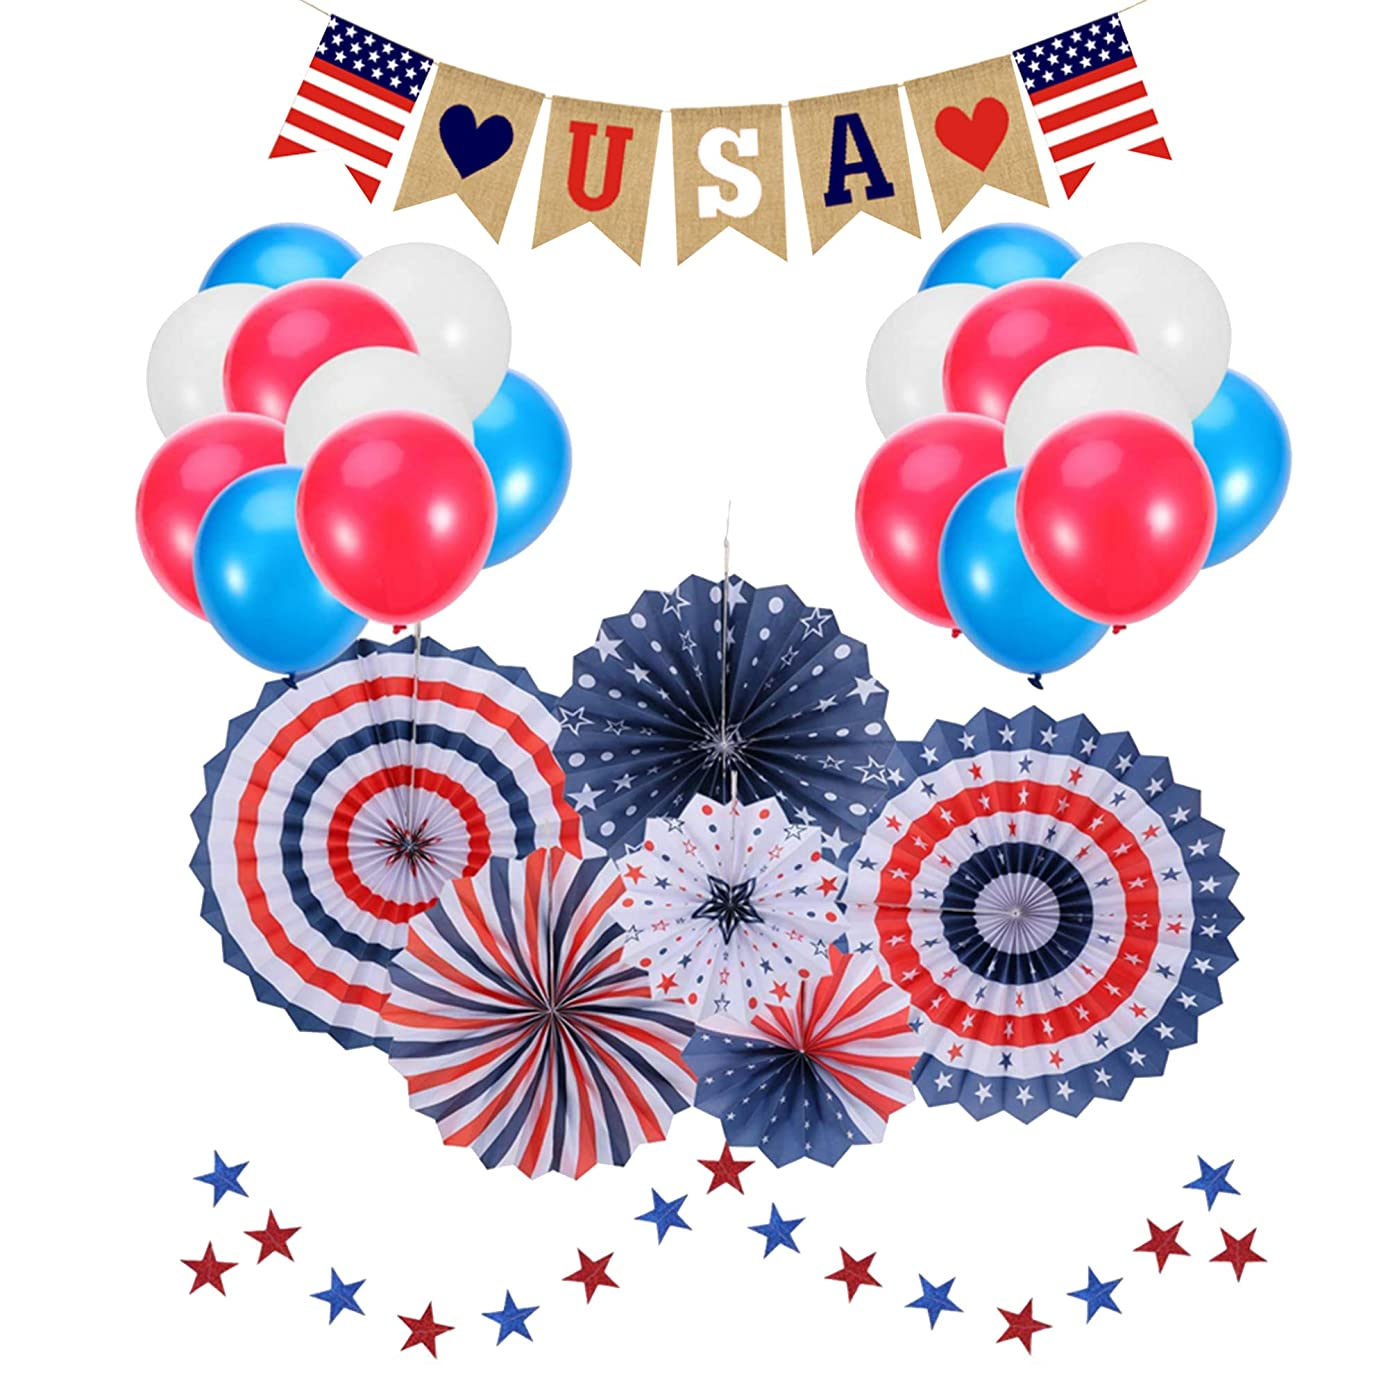 4th of July Decorations  Patriotic Decorations  American Independence Day  July 4th  Include 6pcs Paper Fans  30pcs Balloons  1pcs USA Letter Banner  Star Streamers 1pcs  Party Decor Supplies